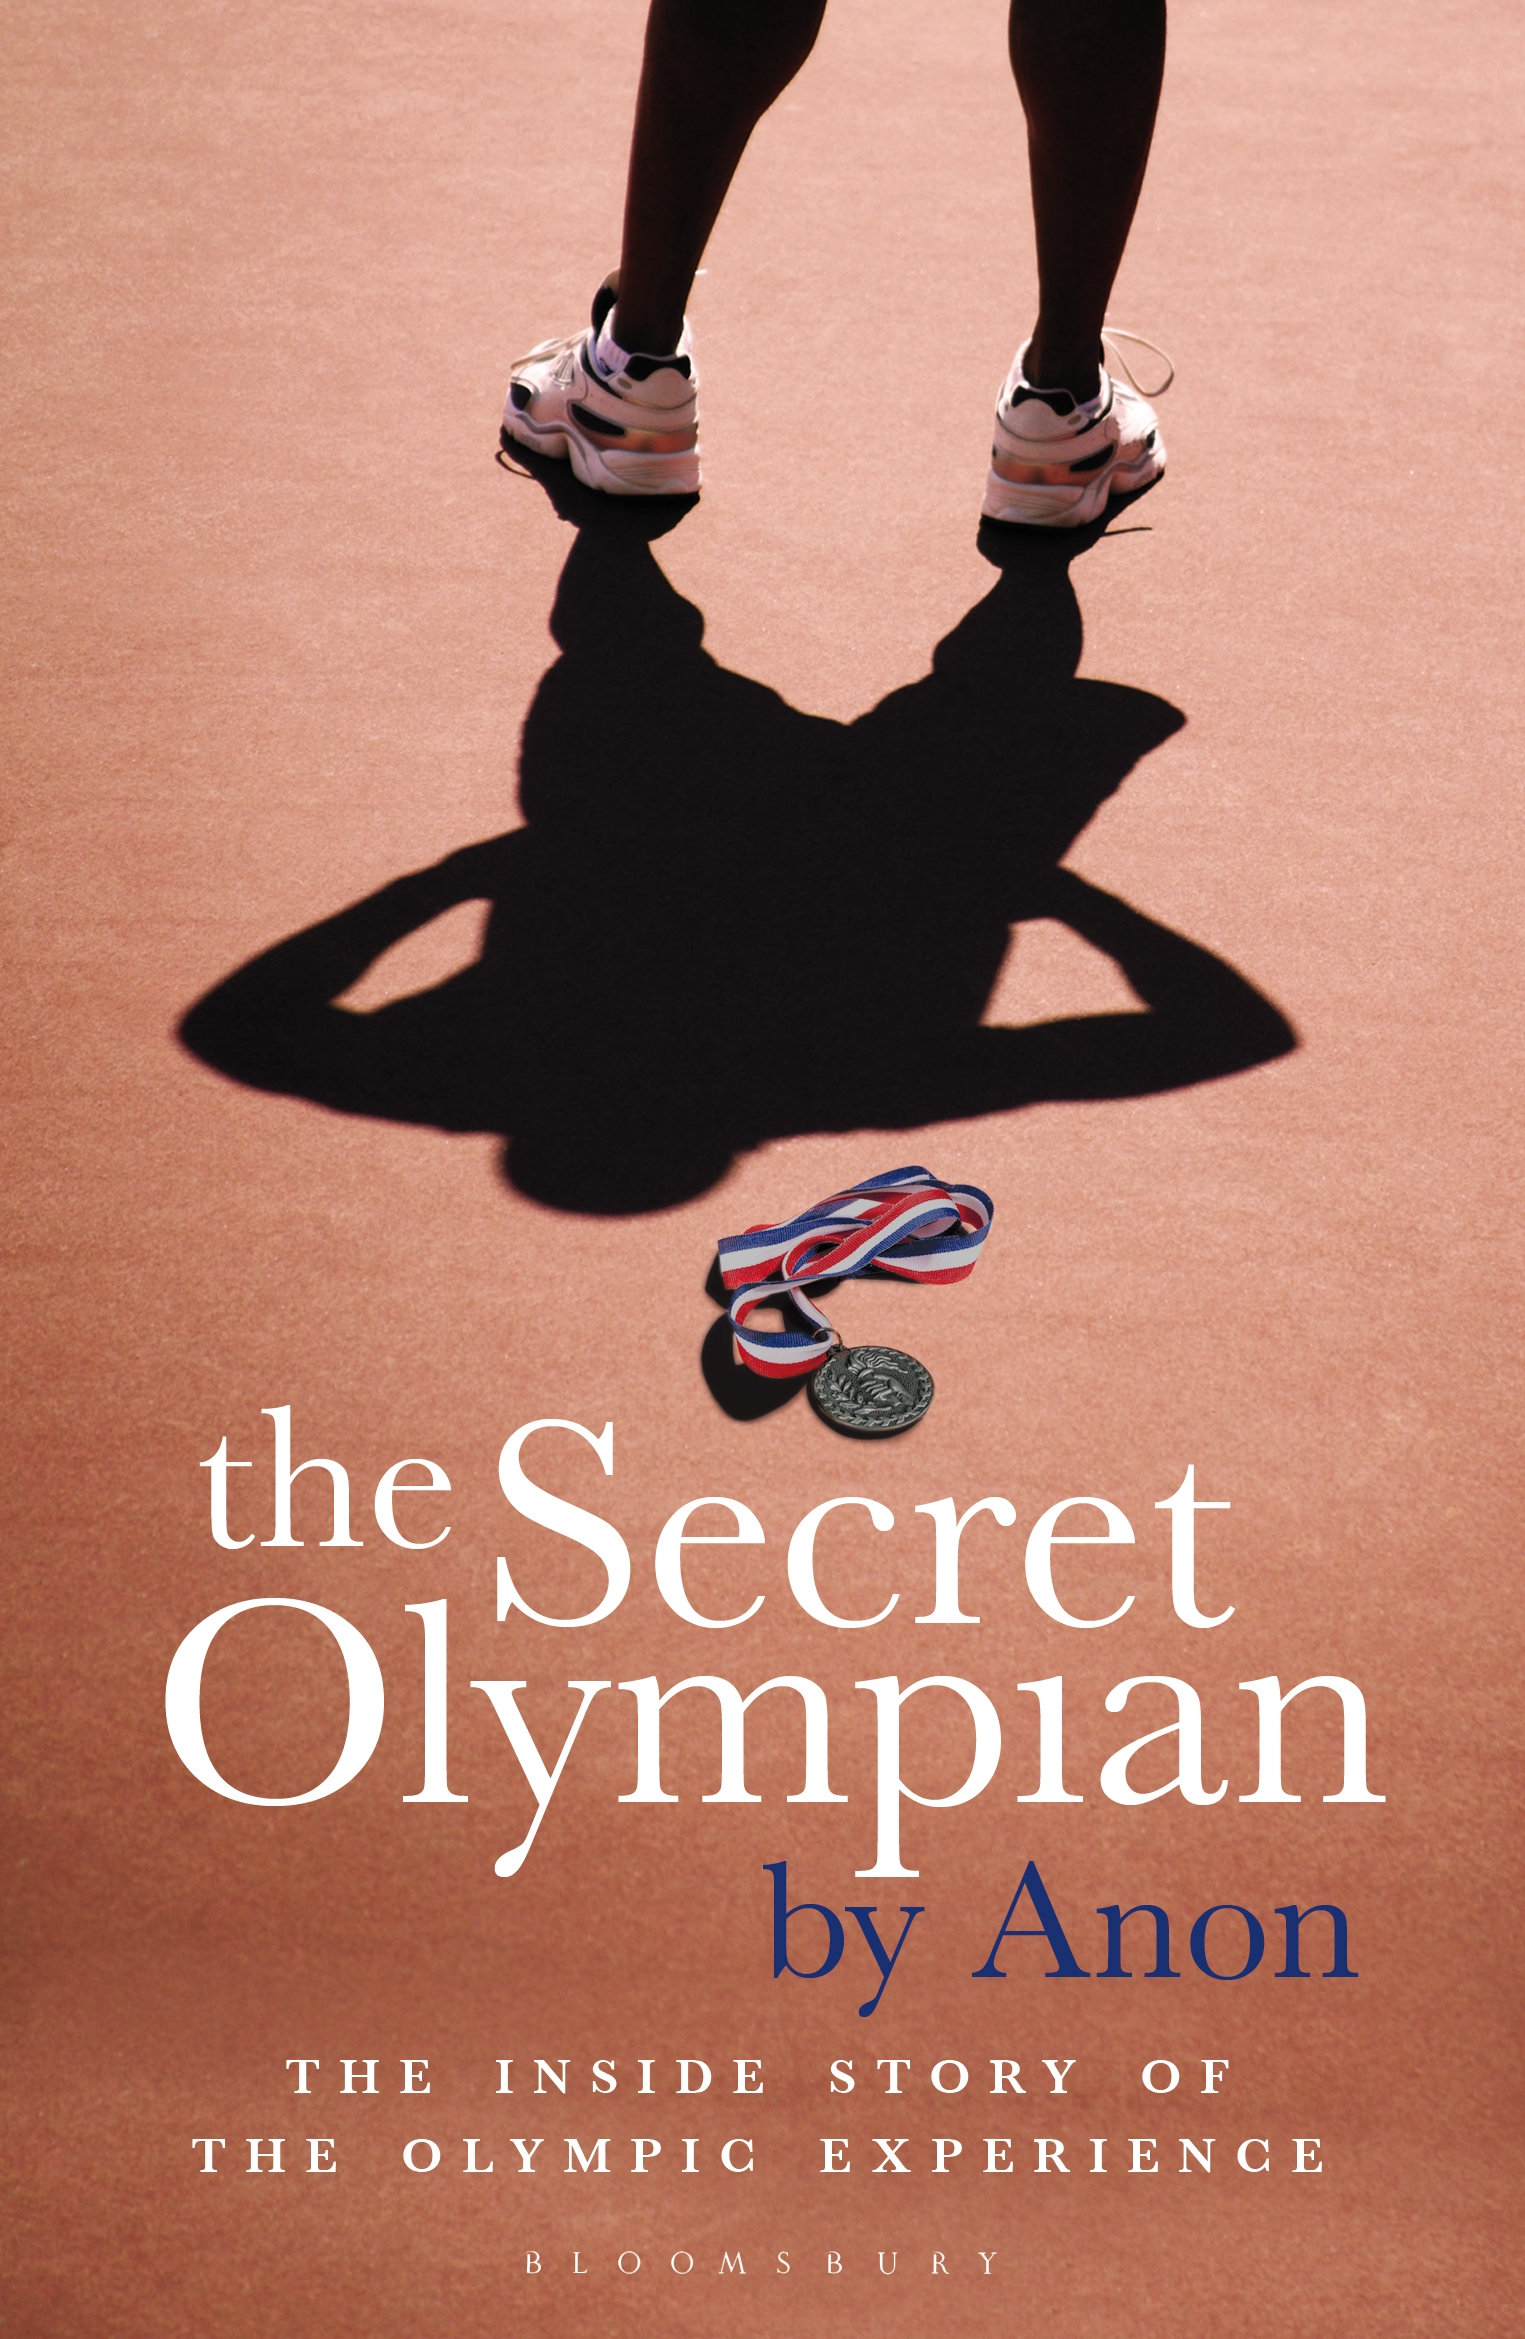 The Secret Olympian: The inside story of the Olympic experience The inside story of the Olympic experience